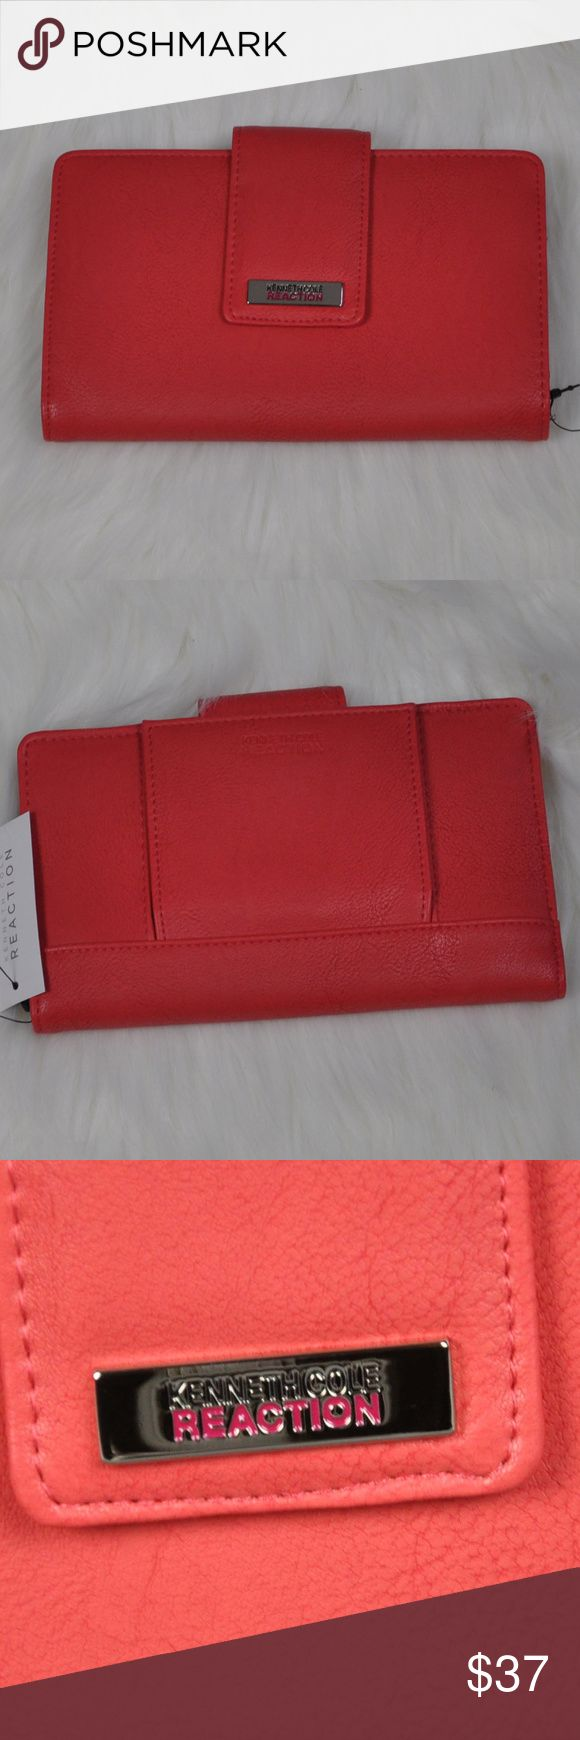 """NWT Kenneth Cole Reaction Salmon Utility Clutch Kenneth Cole Reaction Salmon Utility Clutch Wallet 194534/717 is new with tags.  Faux Salmon colored leather Back Snap has mirror and slot for ID Main compartment has three zippered pockets 5 card slots  1 id slot 3 full length slots one behind the zipper pocket  7.5"""" Wide x 4.5"""" Tal (5 including flap) x 1"""" Thick  Smoke free pet friendly home  Internal SKU: UTILITYSA1  This Kenneth Cole Reaction Salmon Utility Clutch Wallet is stylish and has…"""